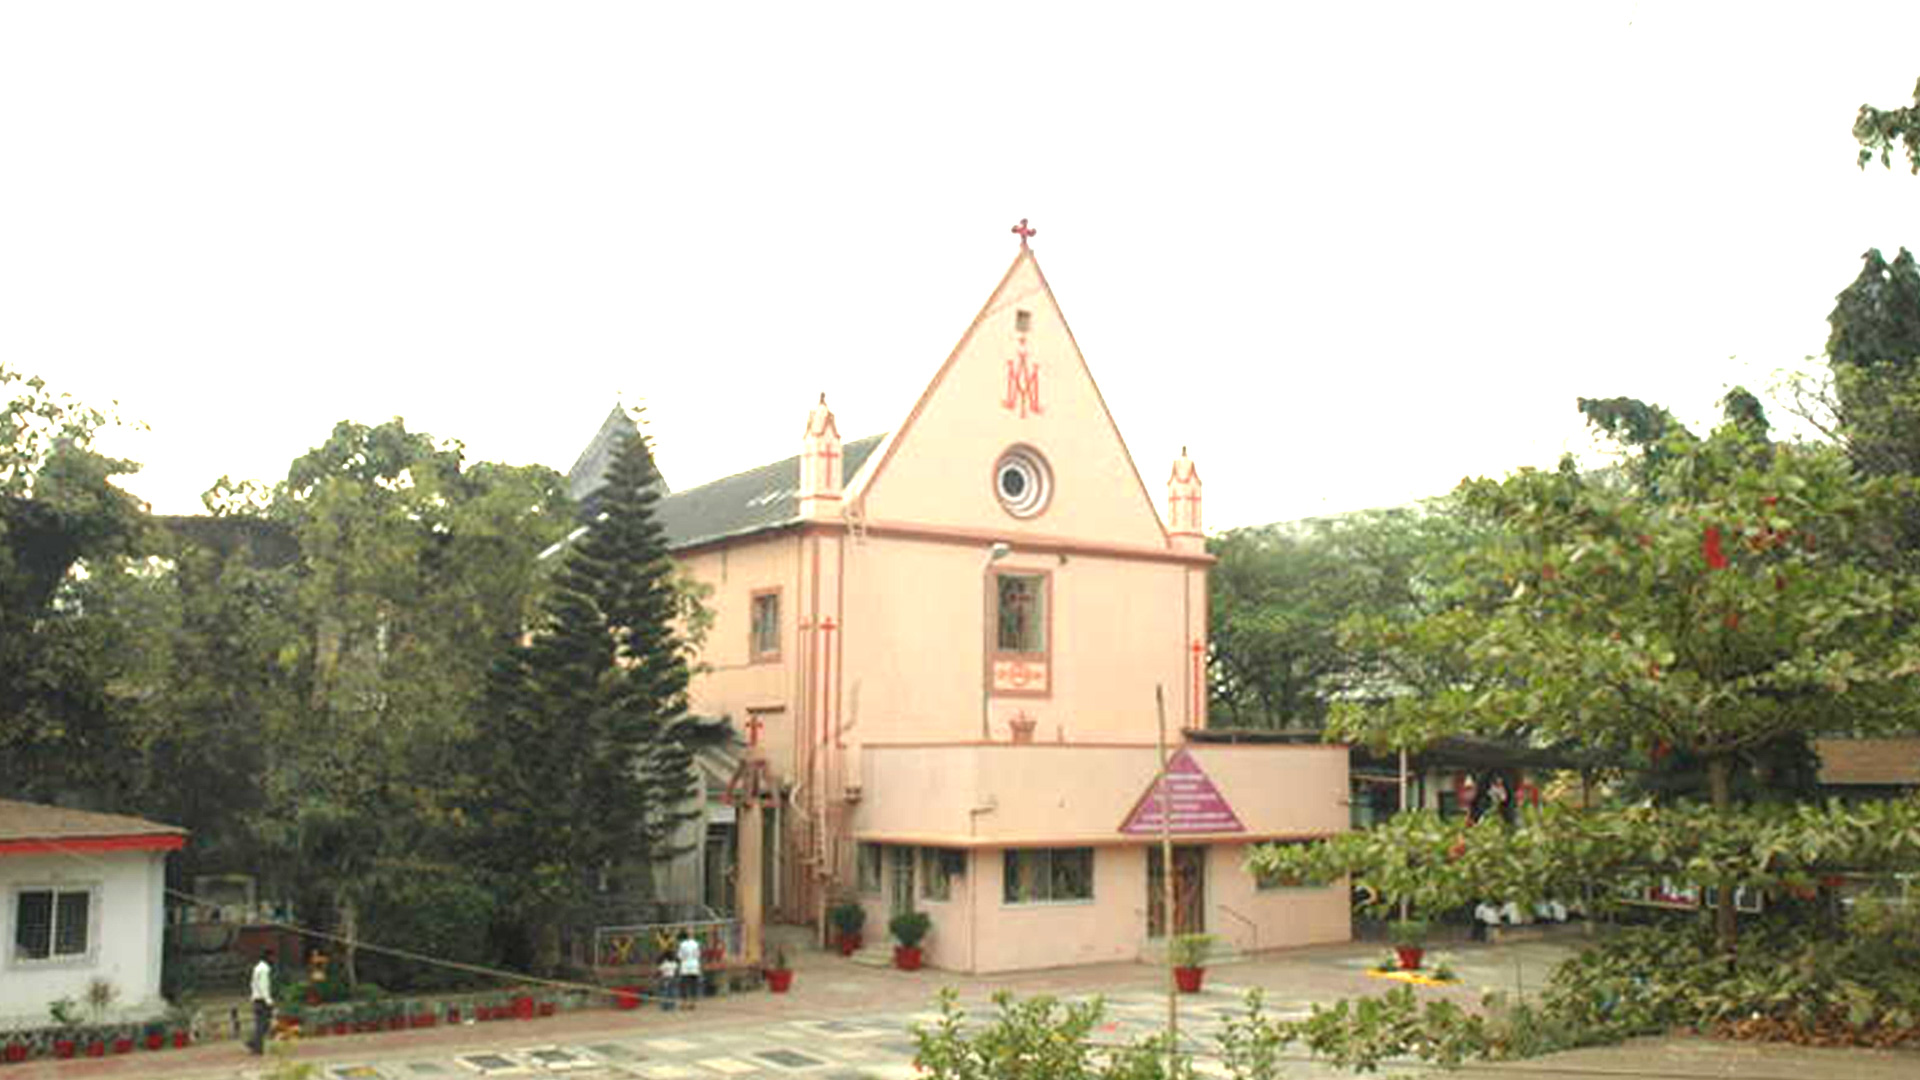 IC Church Borivali - The Most Famous Church in Mumbai Suburbs